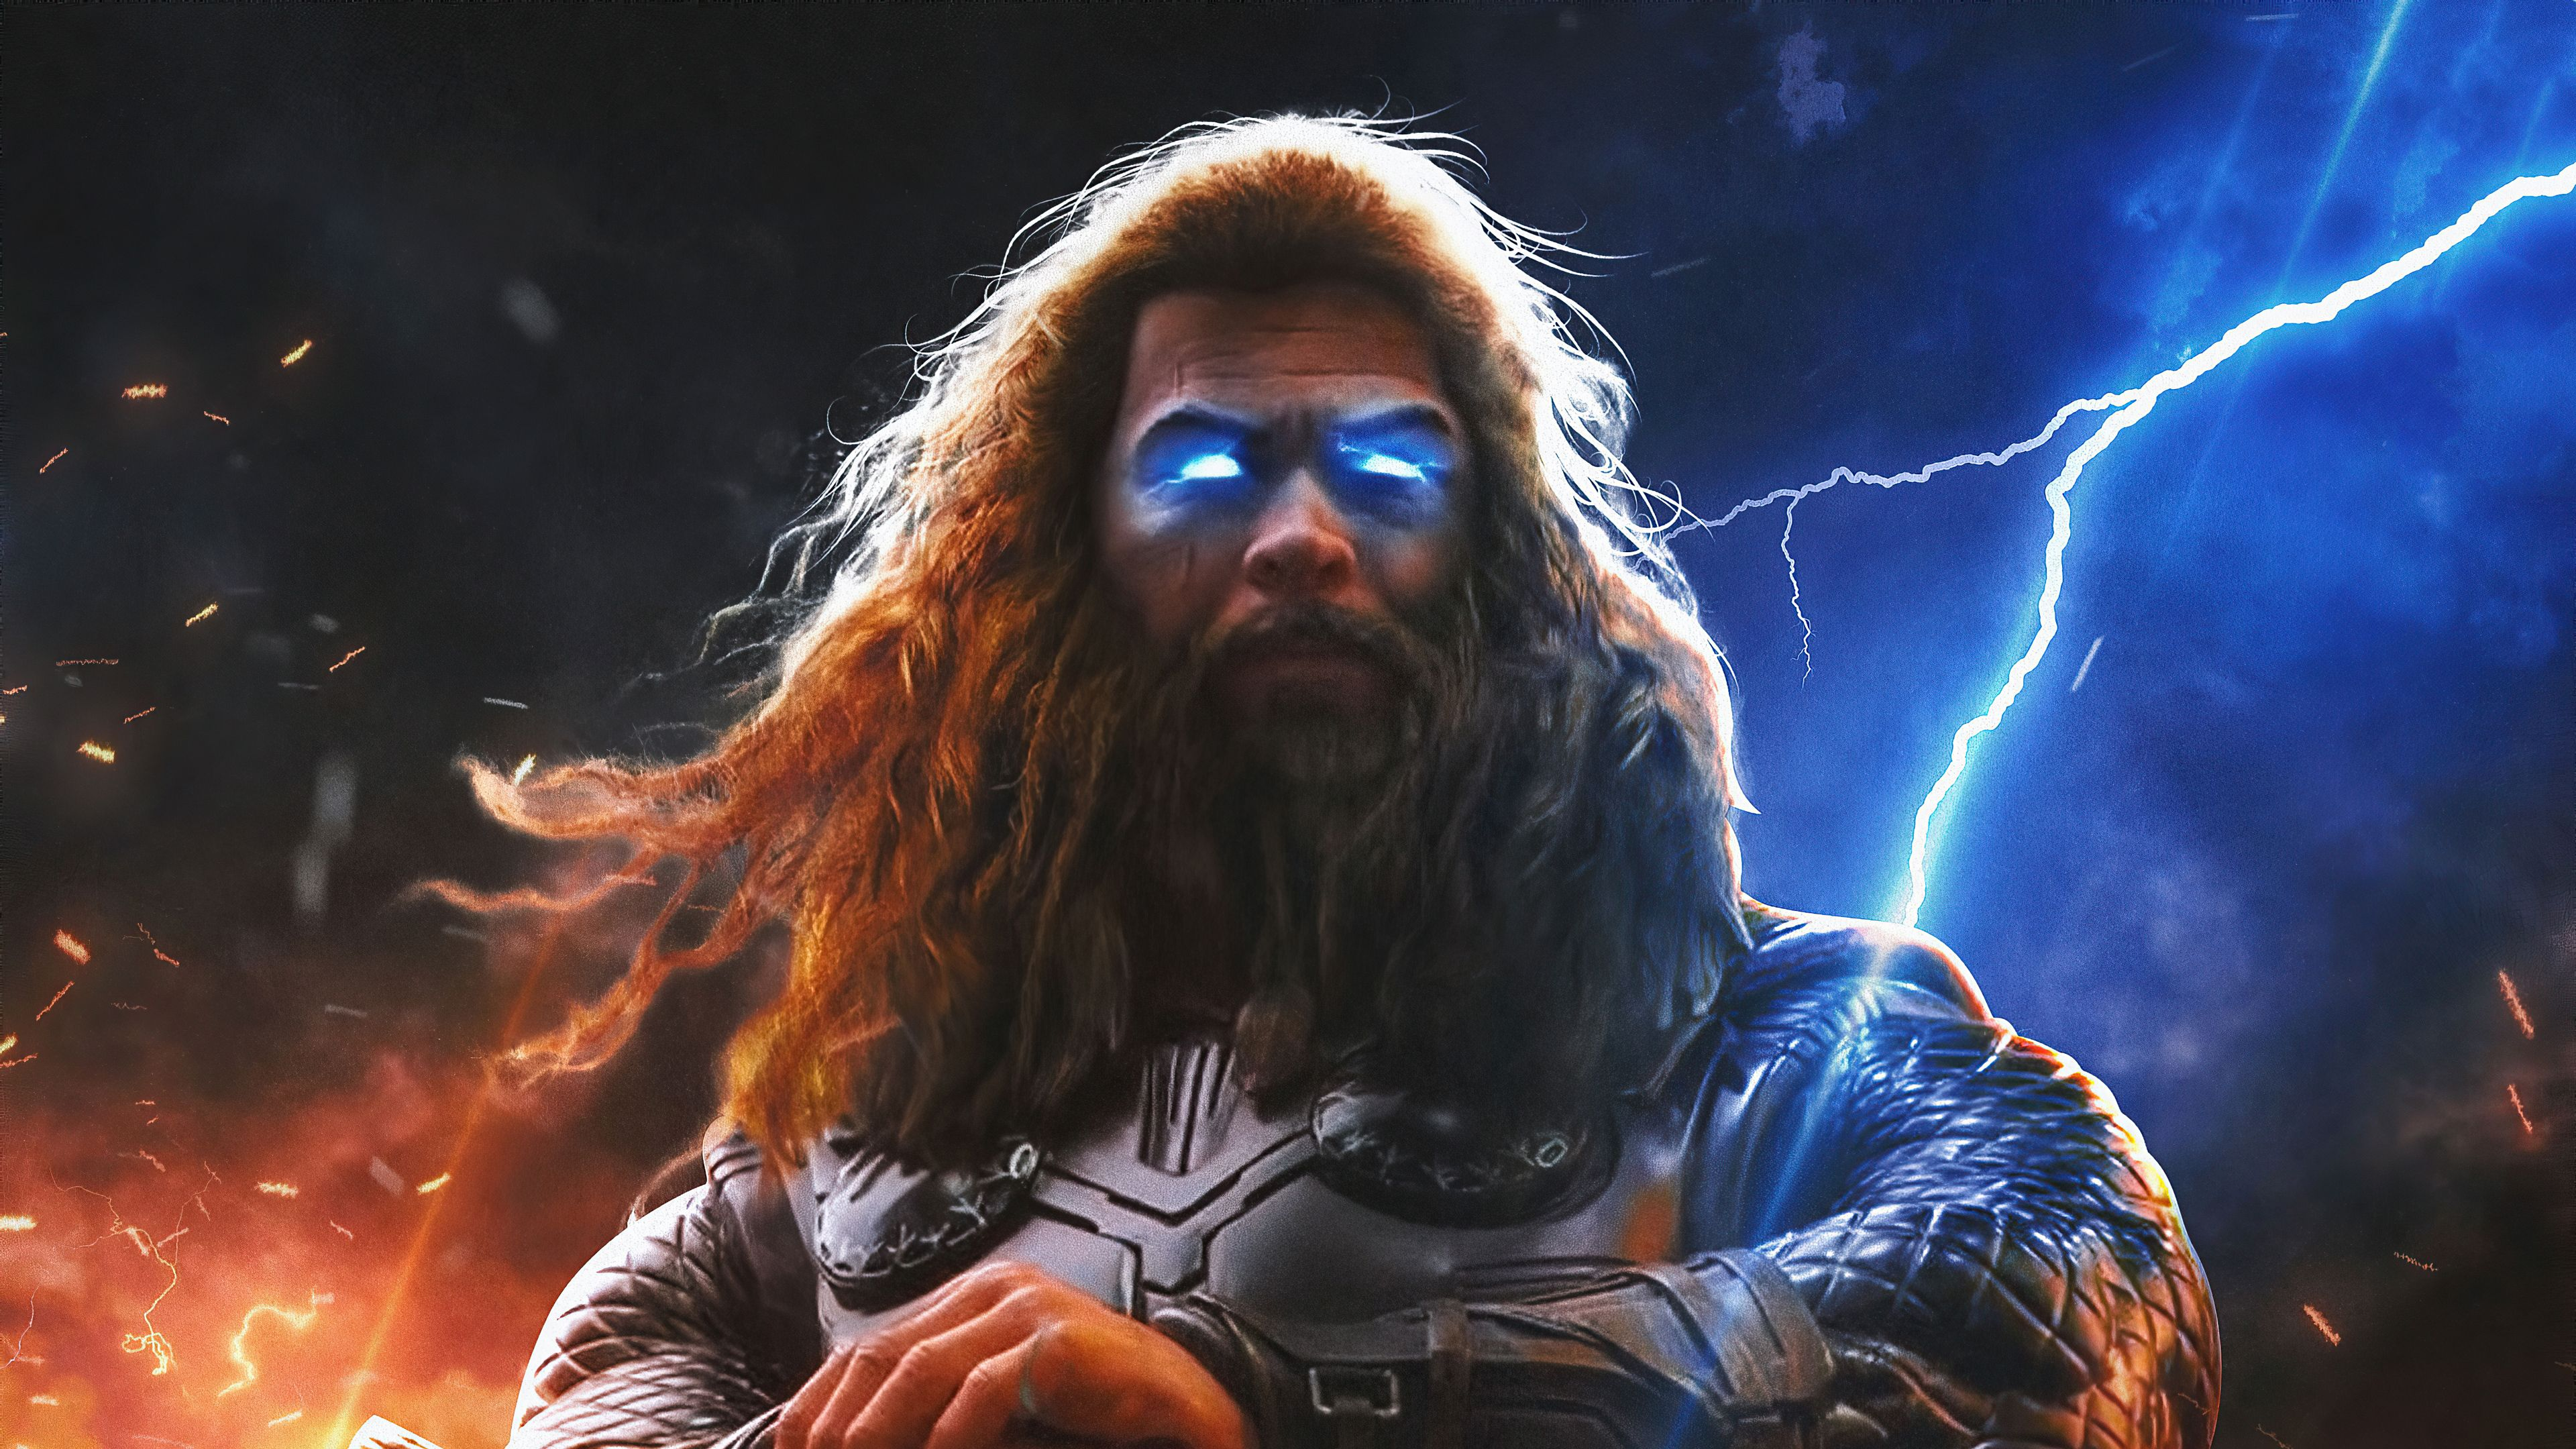 Thor Love And Thunder 2021 Movie, HD Superheroes, 4k Wallpapers, Image, Backgrounds, Photos and Pictures